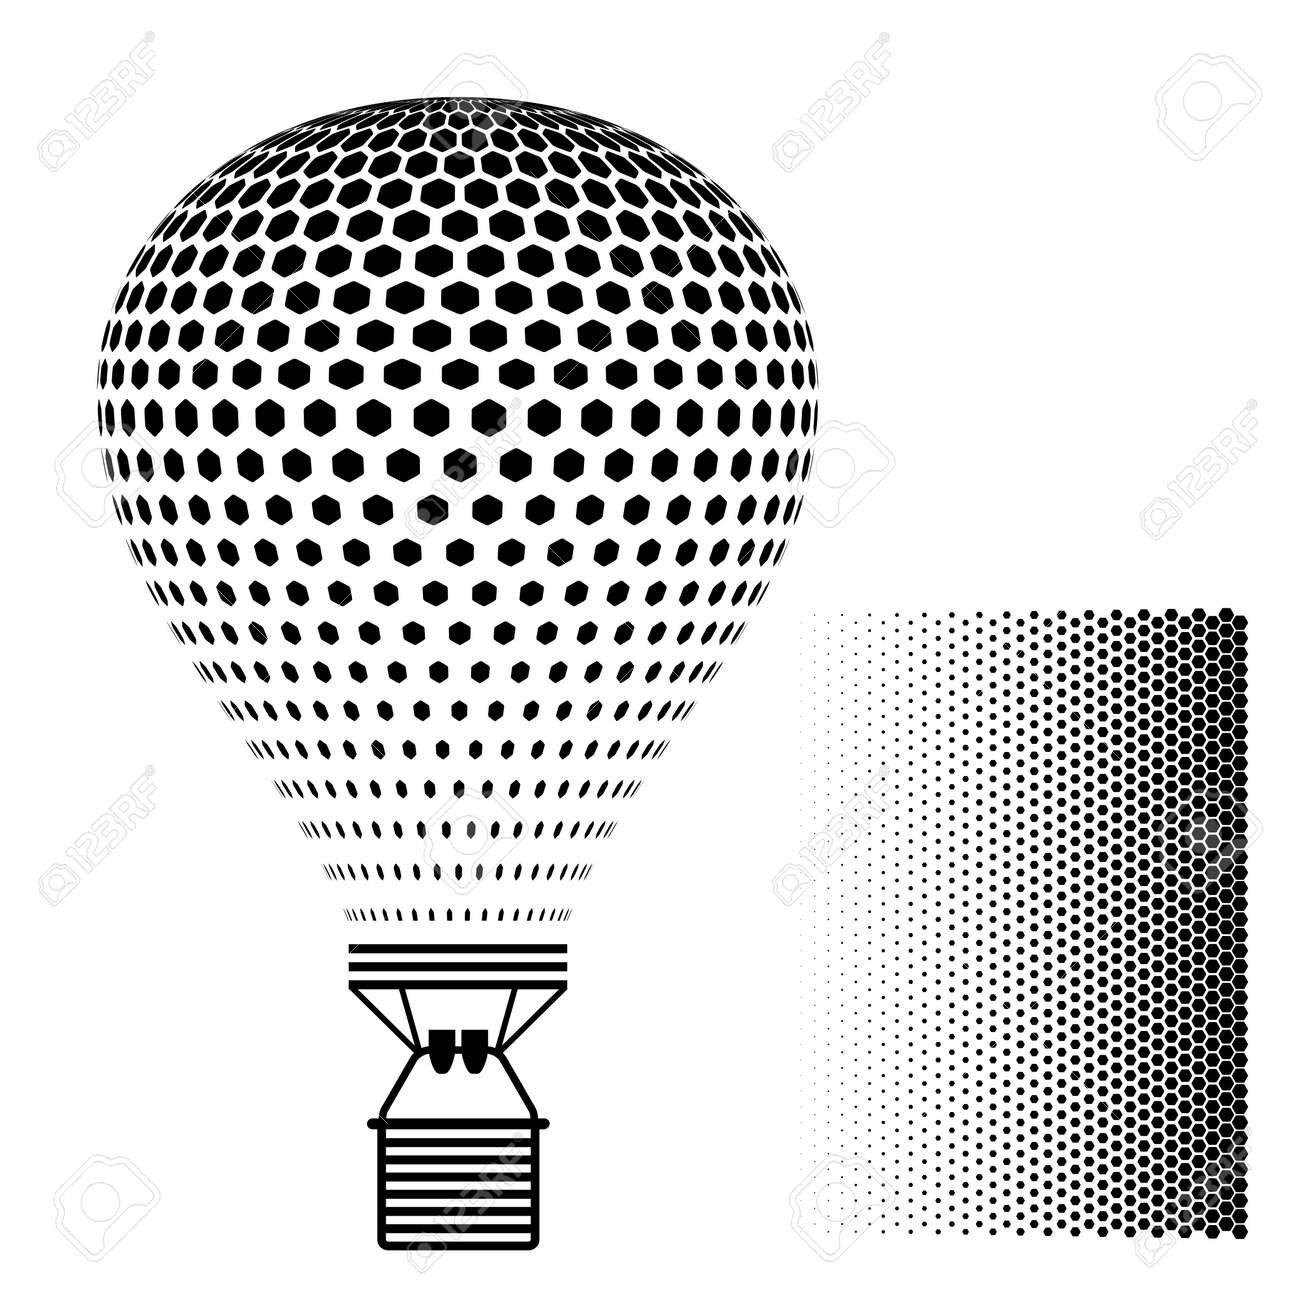 Hot Air Balloon Black Silhouette Royalty Free Cliparts, Vectors, And ...